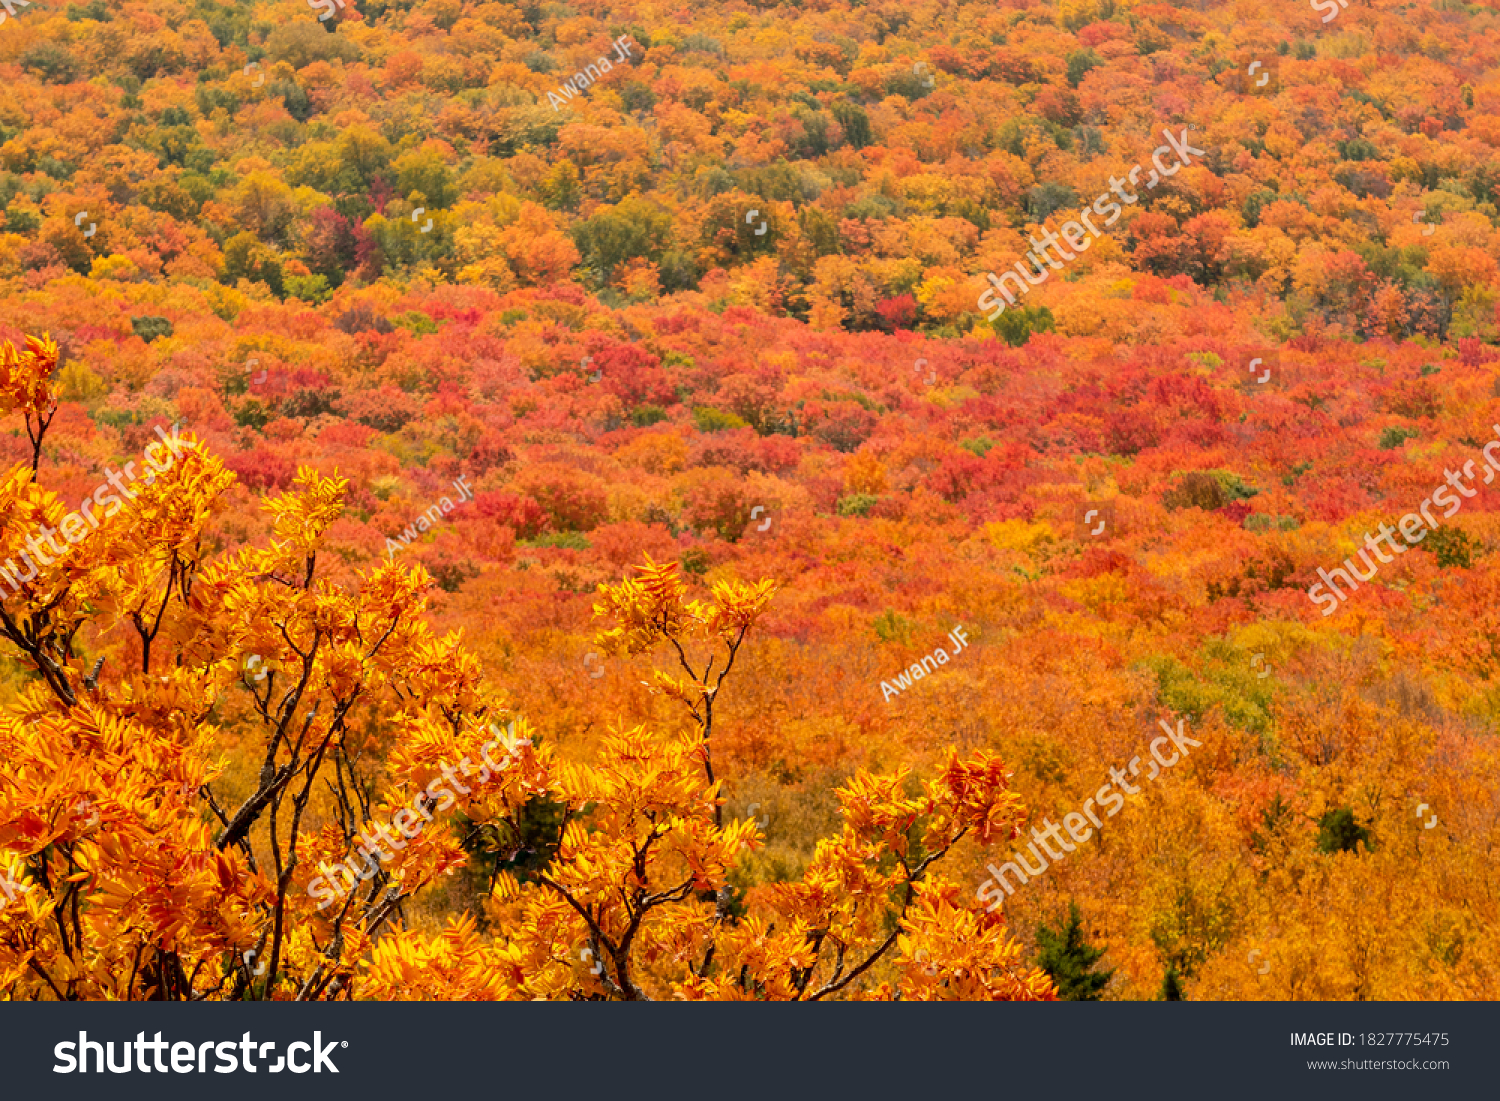 stock-photo-beautiful-autumnal-colors-in